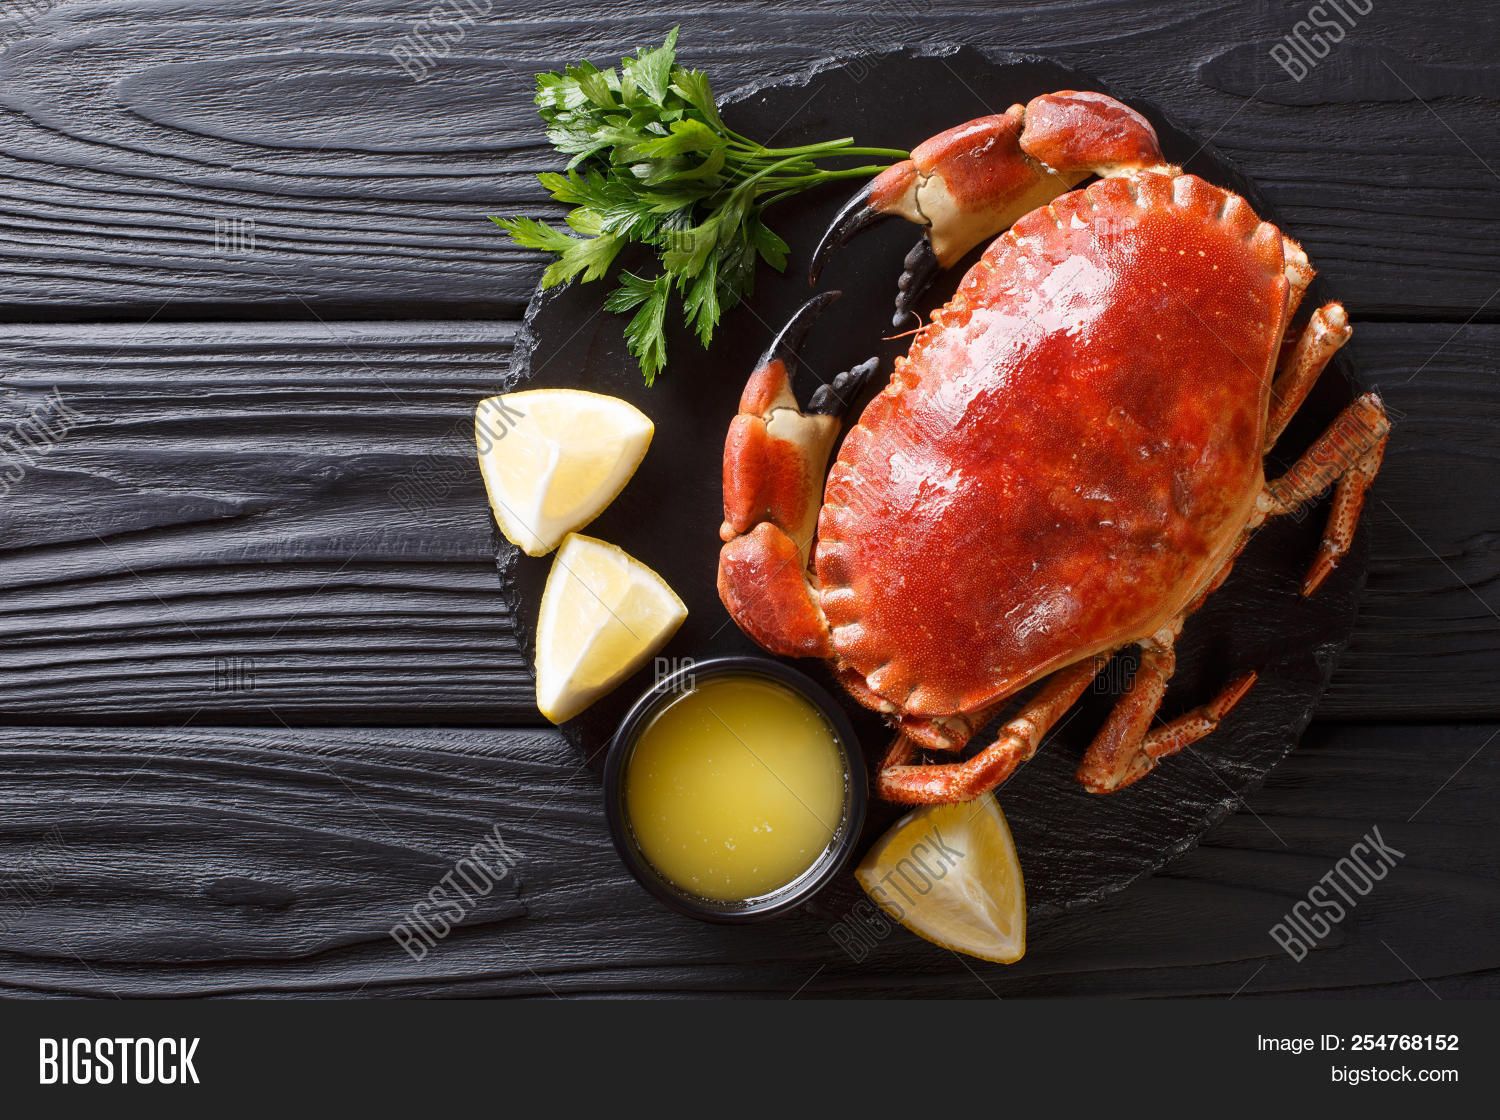 above,background,black,board,brown,cancer,carapace,chili,claws,closeup,country,crab,crustacean,delicious,dinner,dish,edible,exoskeleton,food,fresh,gourmet,green,healthy,herb,horizontal,ingredient,lemon,meal,menu,organic,pagurus,parsley,pepper,prepared,raw,restaurant,rustic,salt,sea,seafood,served,shellfish,slate,table,tasty,top,view,whole,wild,wooden